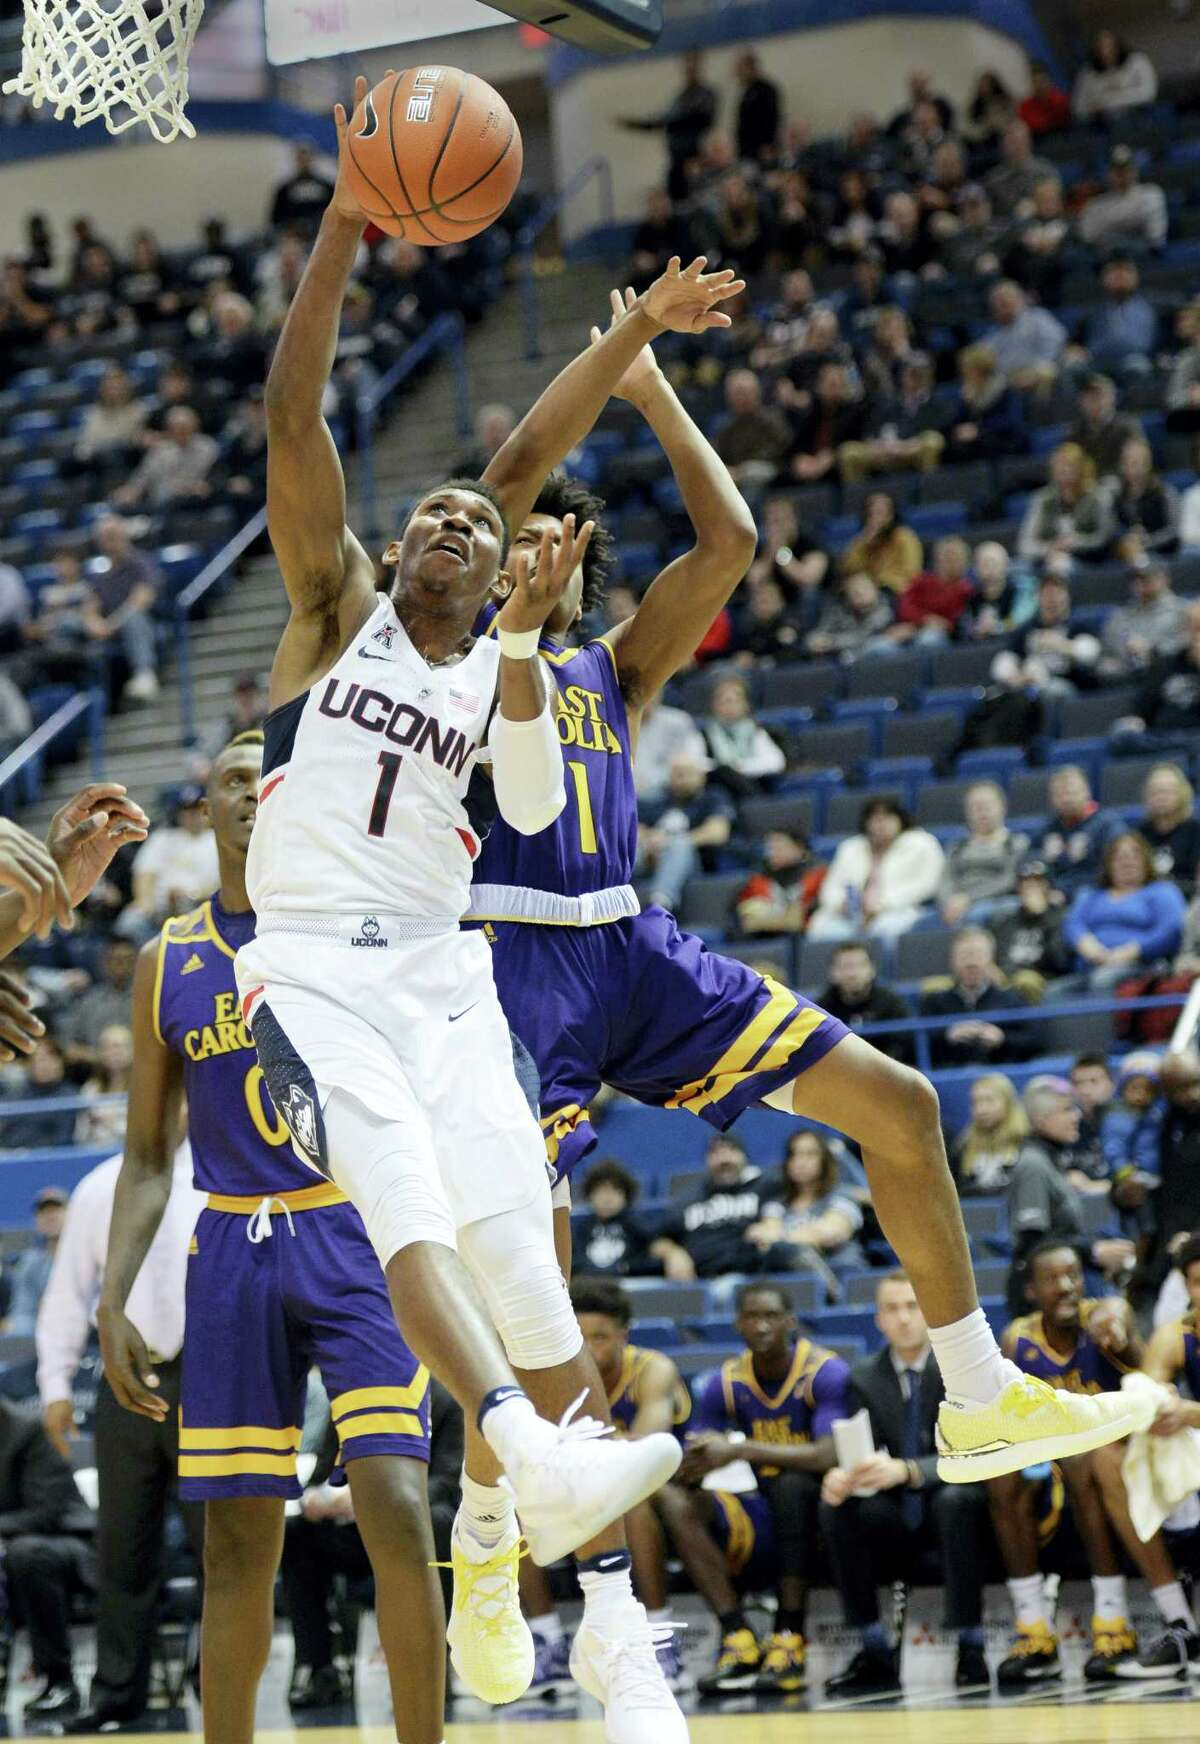 UConn's Christian Vital (1) shoots over East Carolina's Jeremy Sheppard during a recent game.